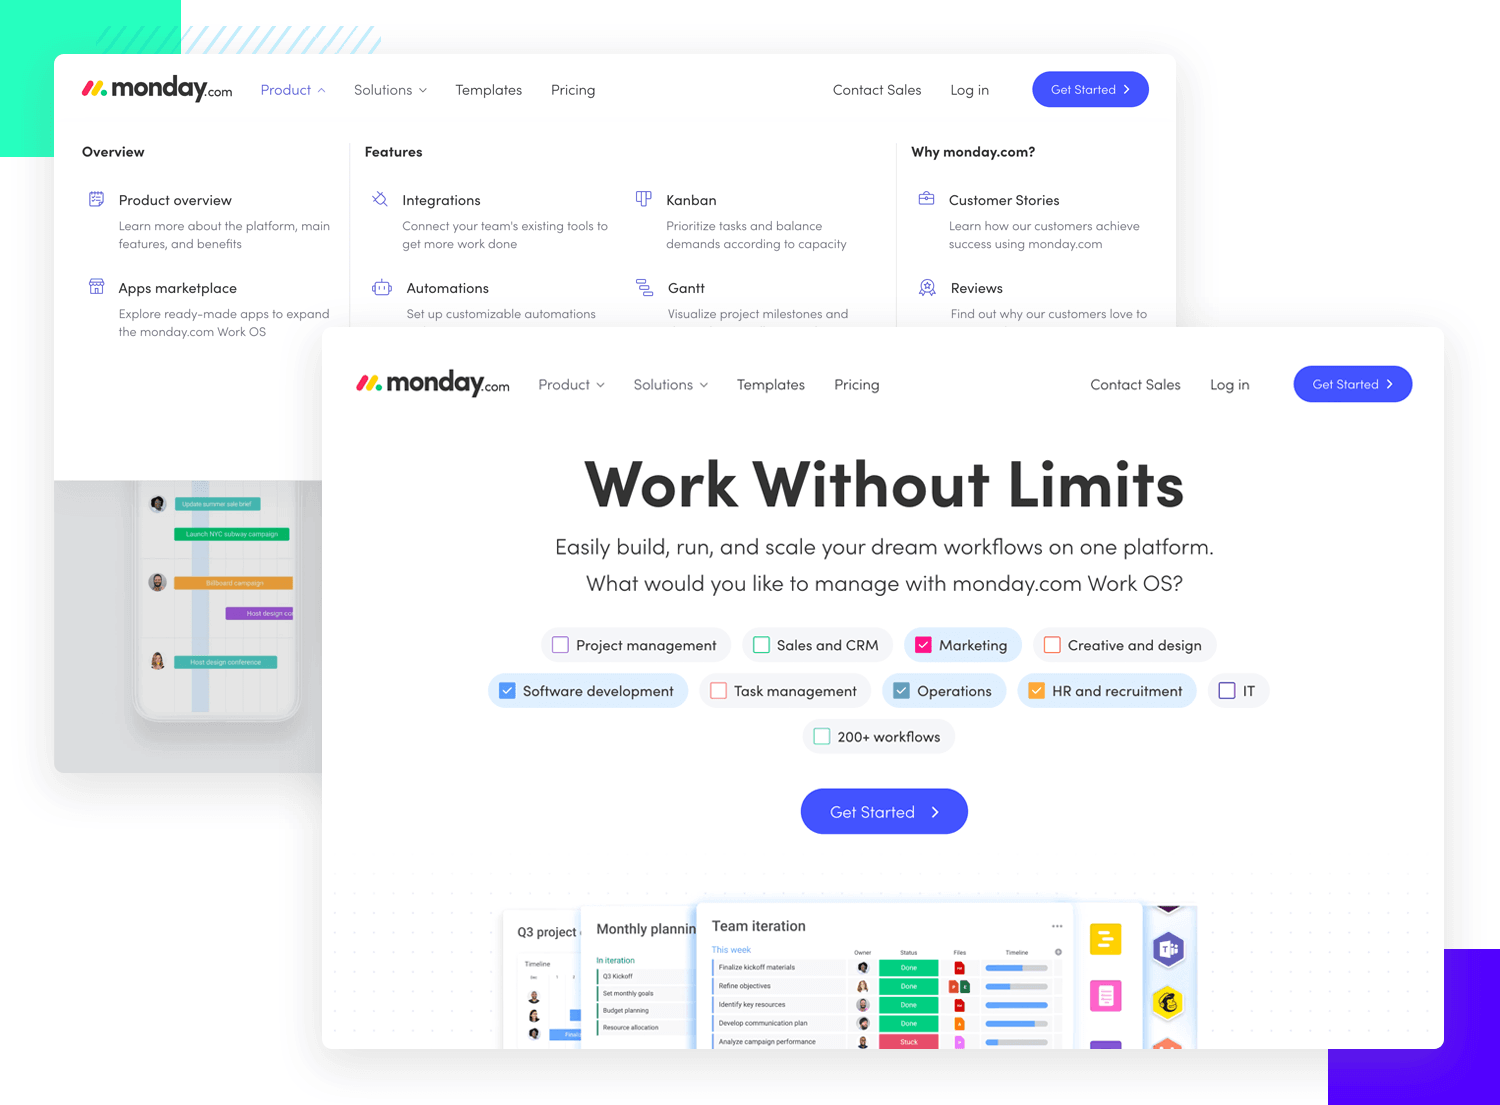 UI example from Monday.com that uses whitespace